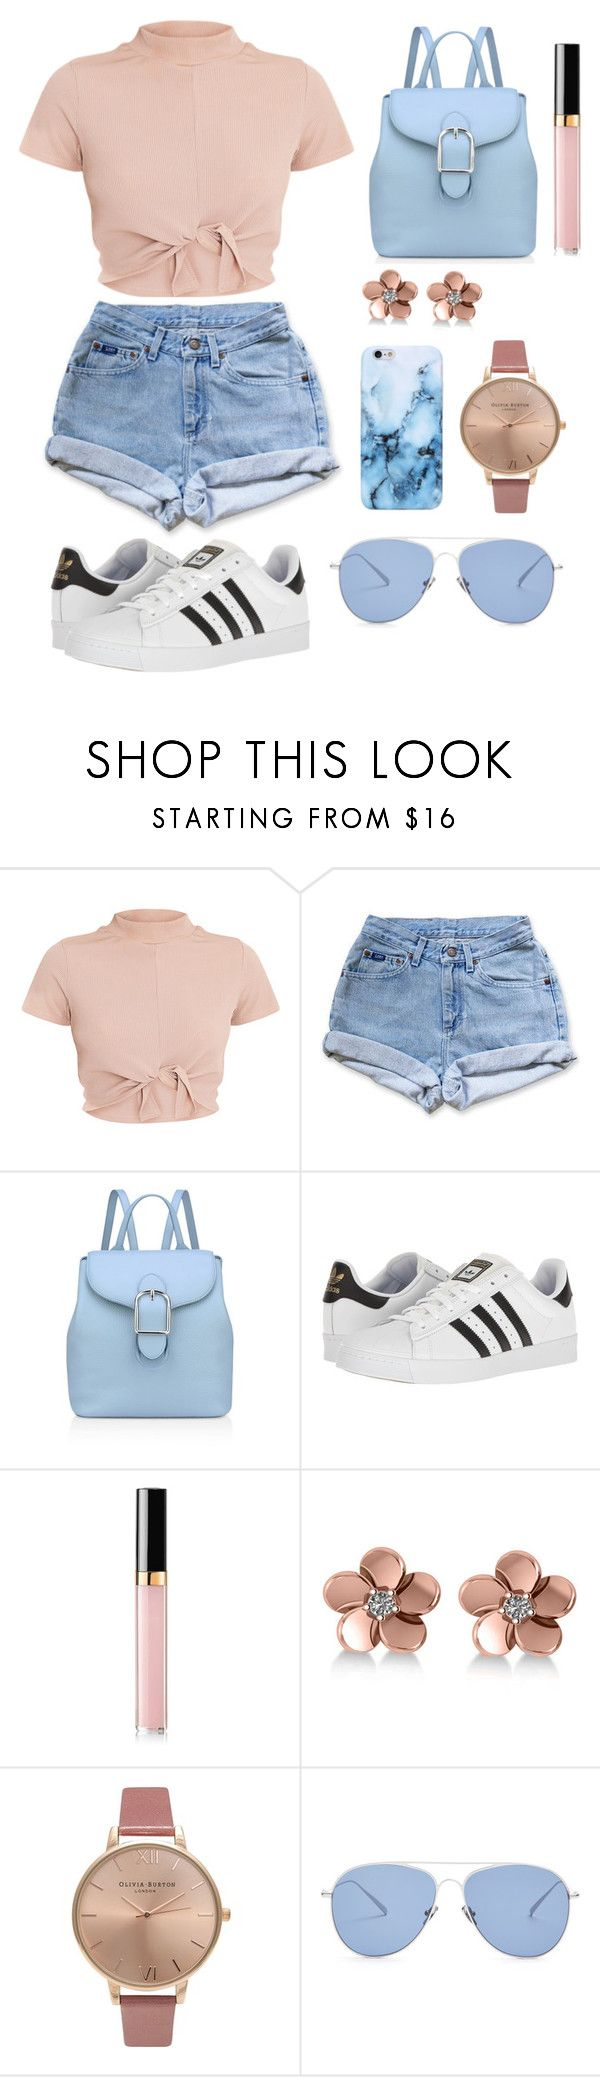 """""""While We're Young"""" by joyymedina ❤ liked on Polyvore featuring Levi's, Anne Klein, adidas, Chanel, Allurez, Olivia Burton and Kaleos"""